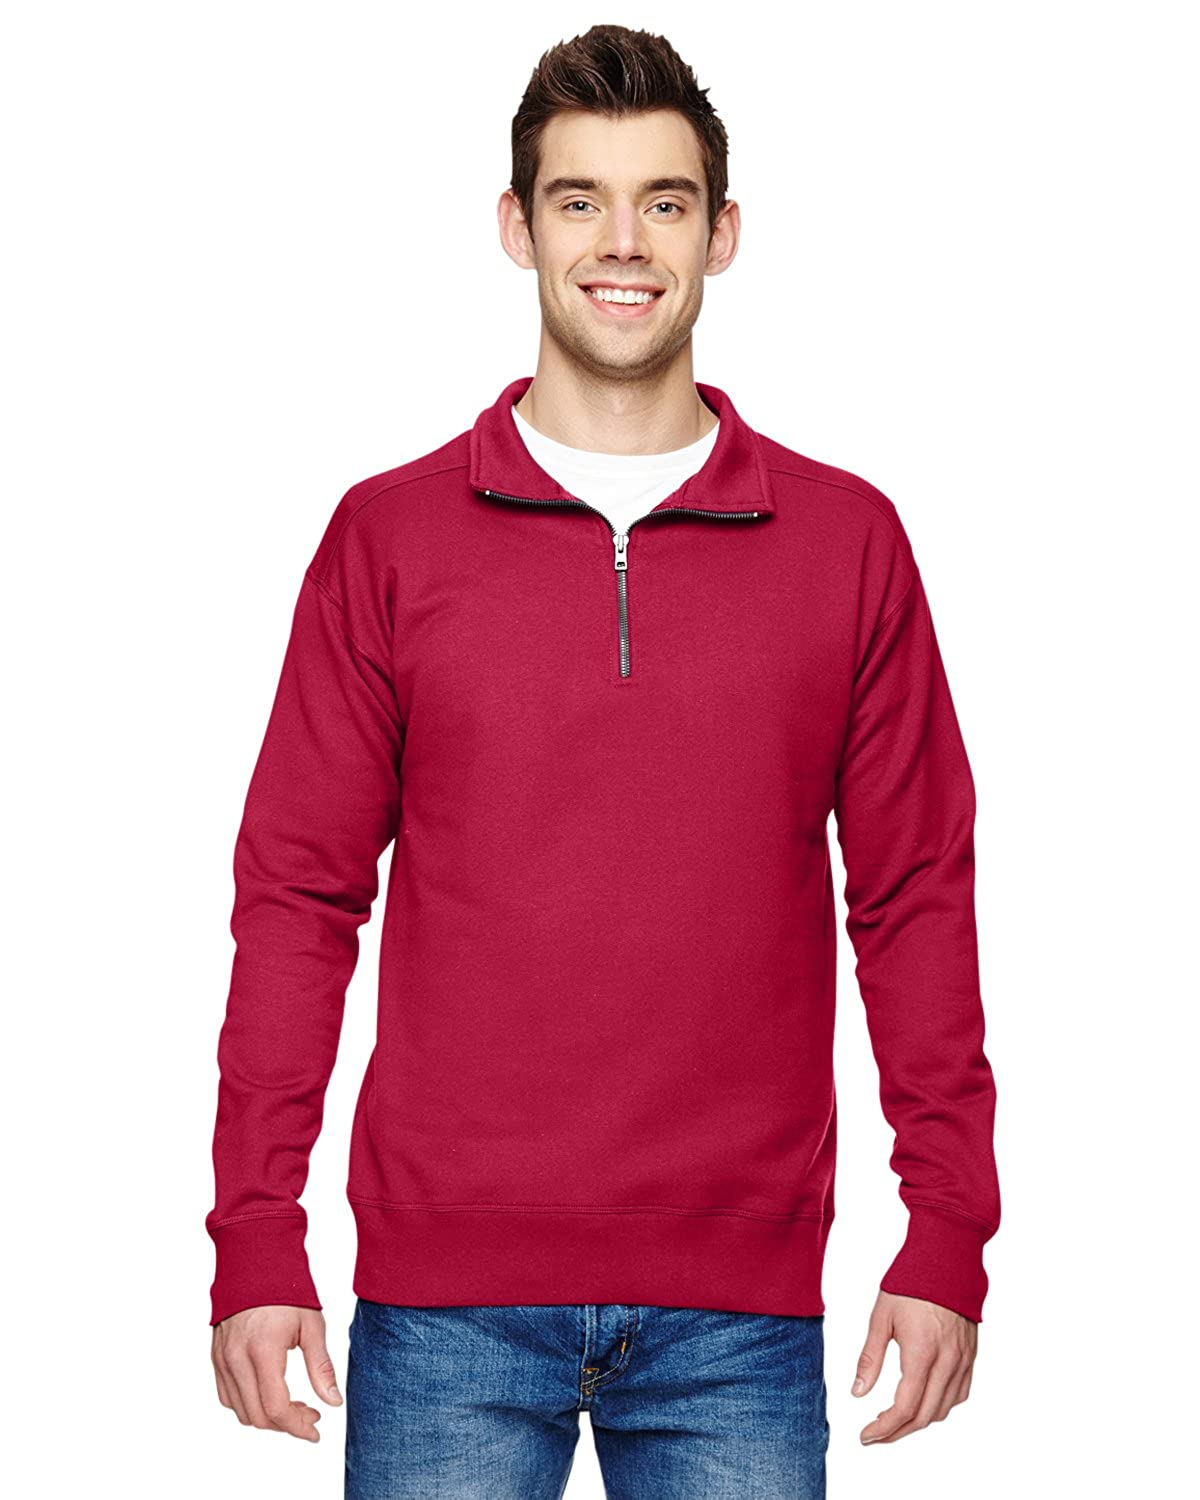 Hanes mens 7.2 oz. Quarter-Zip (N290)